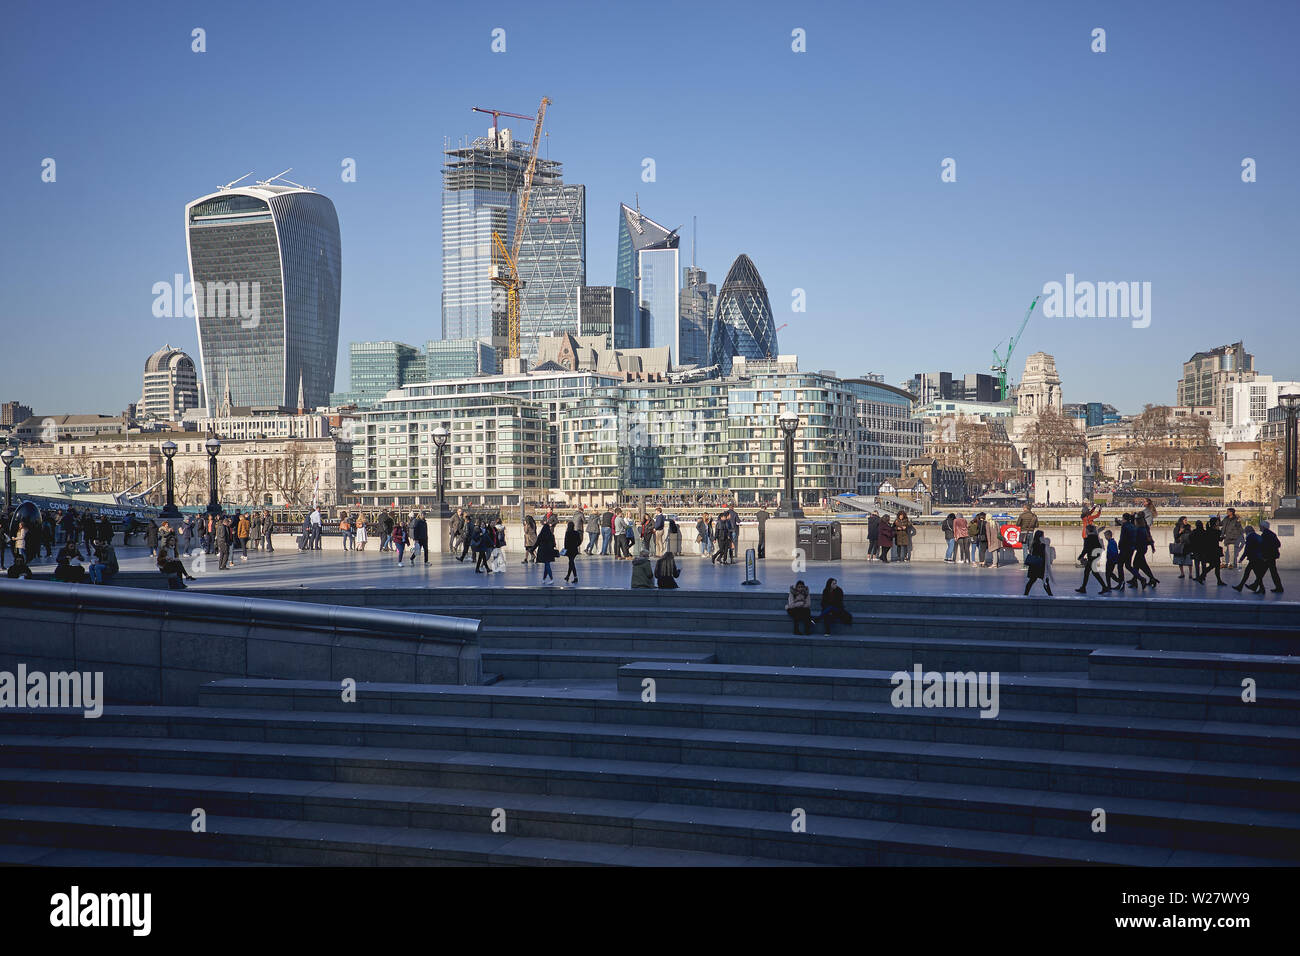 London, UK - February, 2019. View of the City of London, the famous financial district, with new skyscrapers under construction. Stock Photo